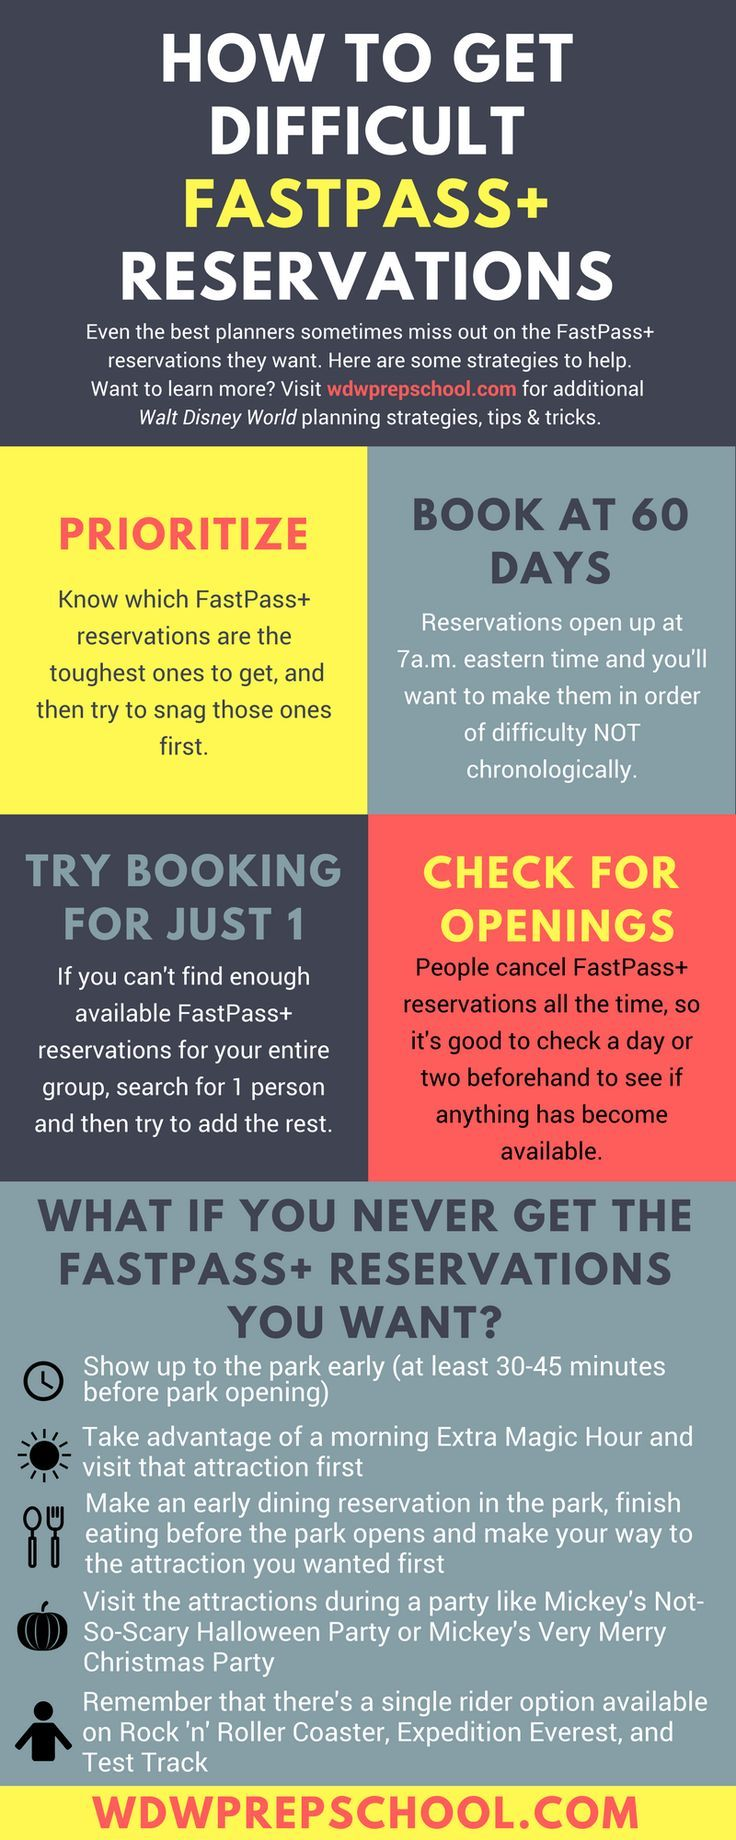 Strategies to help you snag difficult FastPass+ reservations   Walt Disney World   My Disney Experience